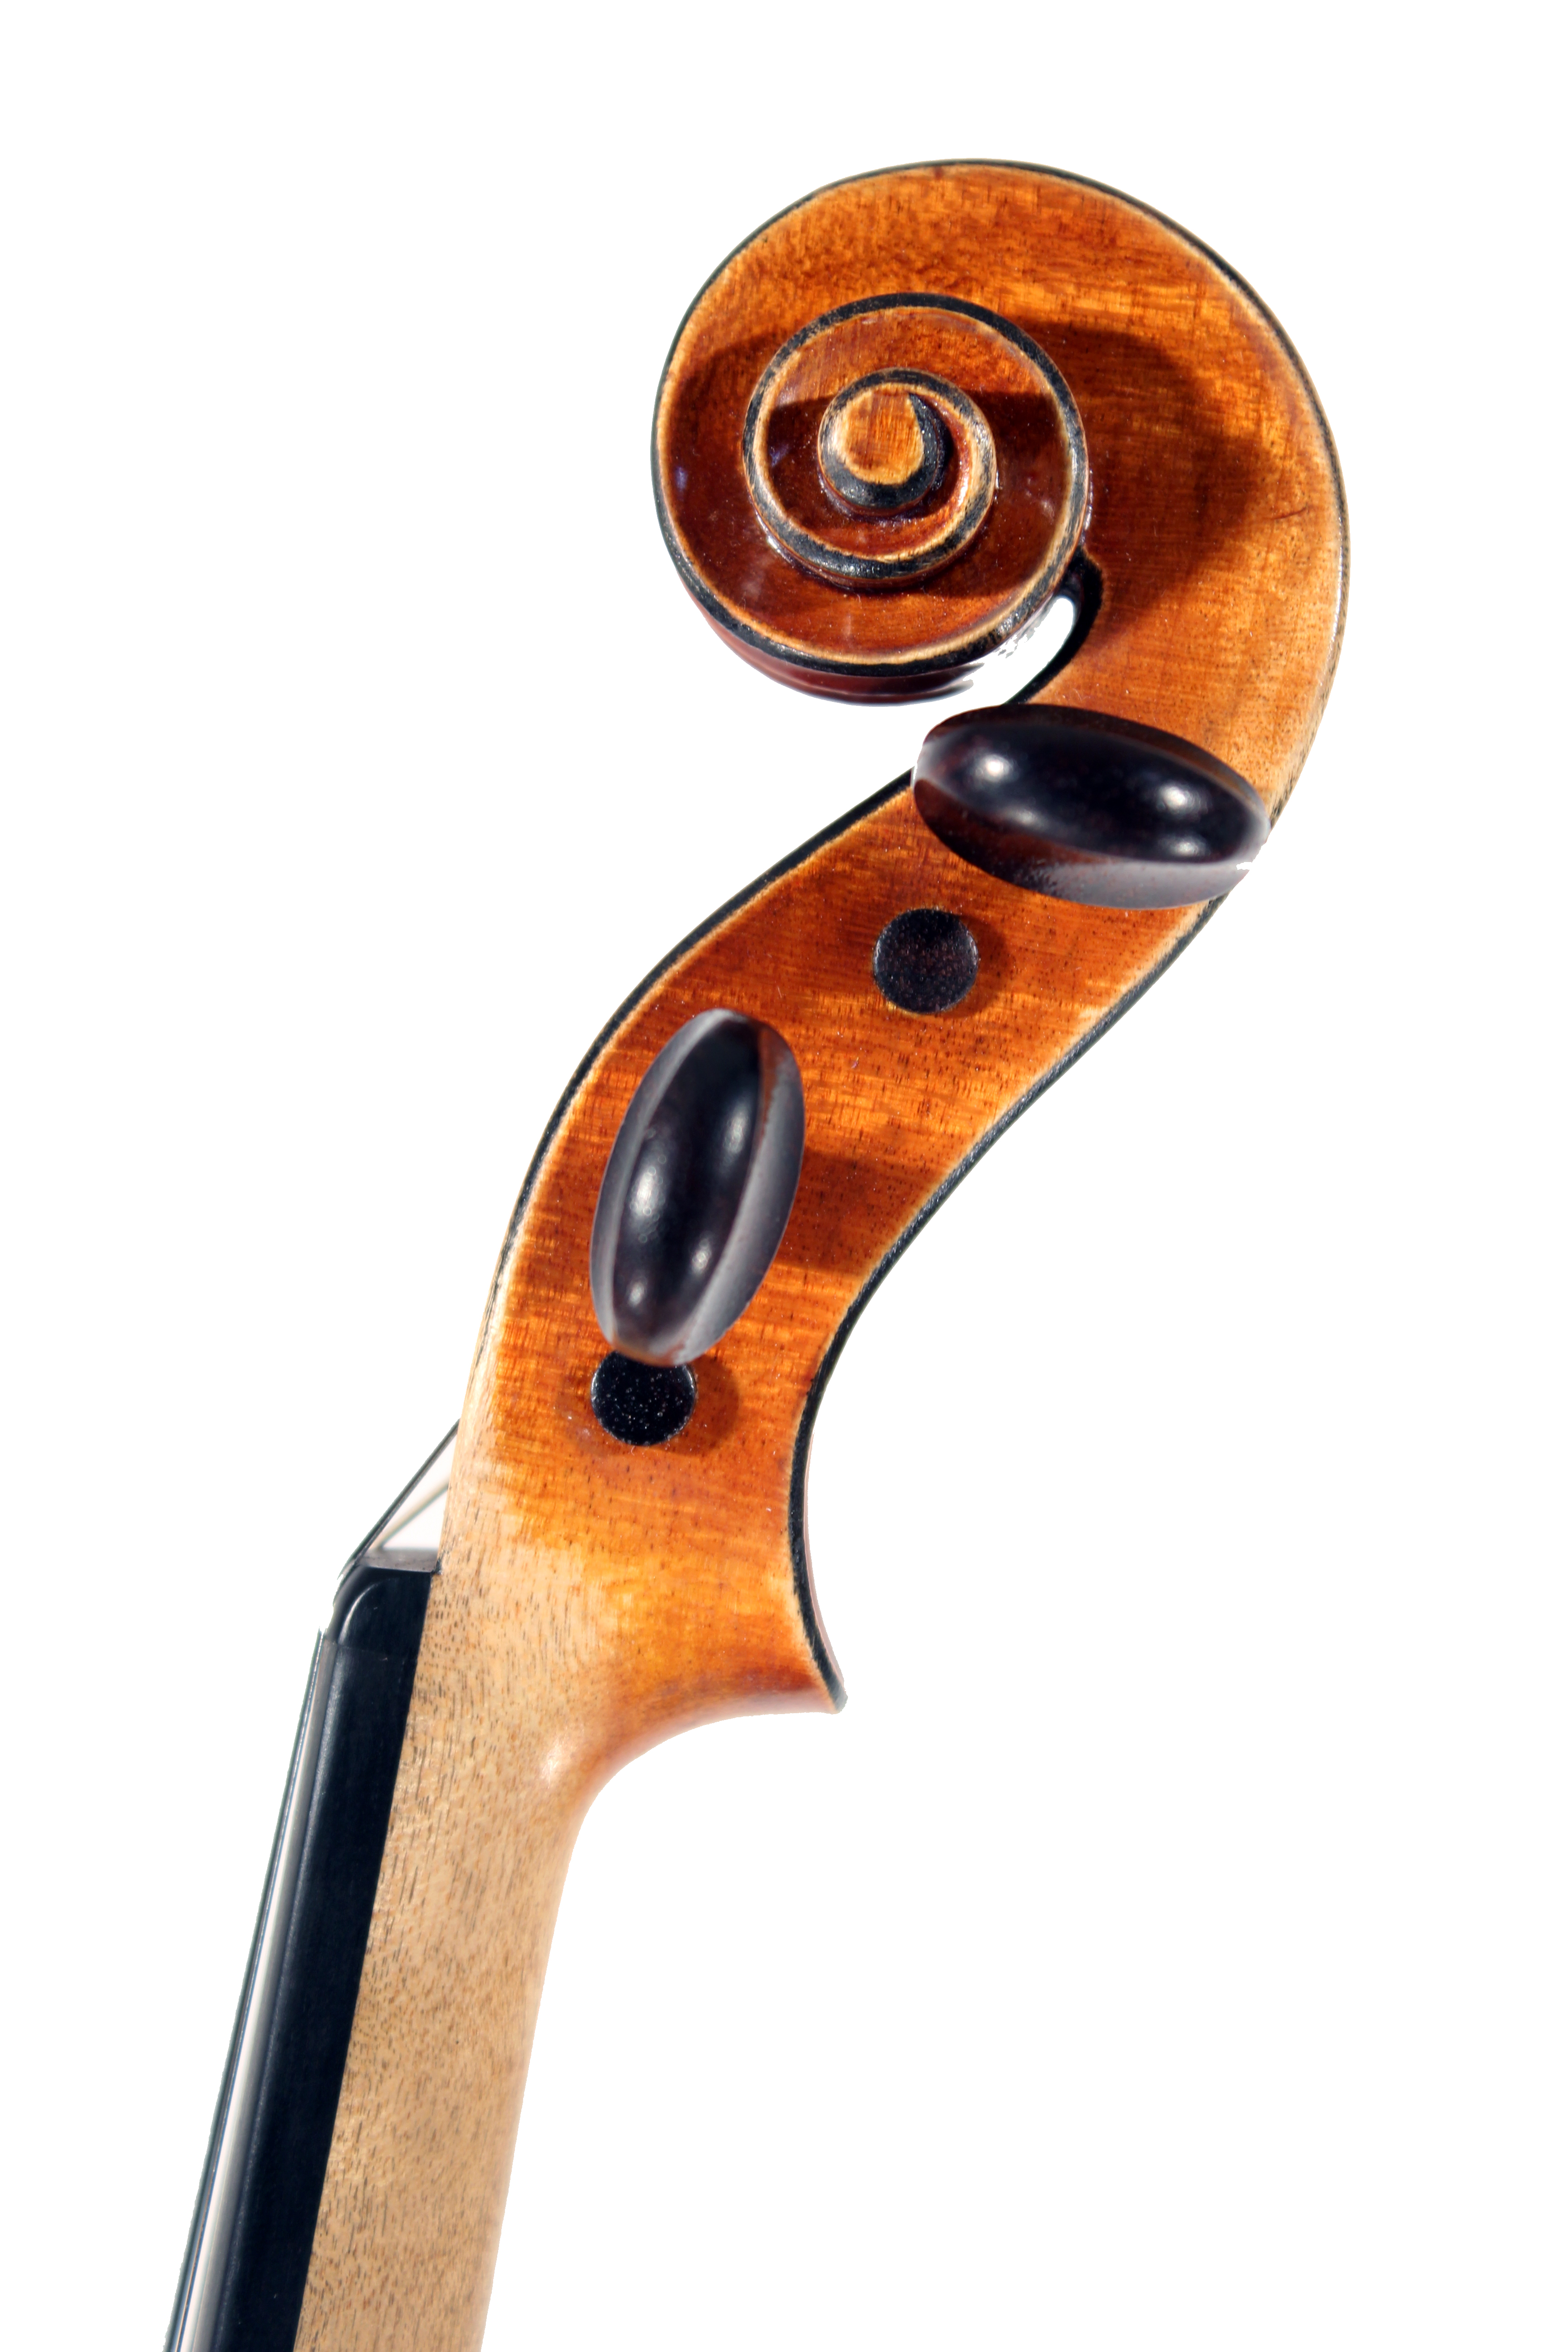 Violin by Michael Sheridan 2016 for sale at Bridgewood and Neitzert London